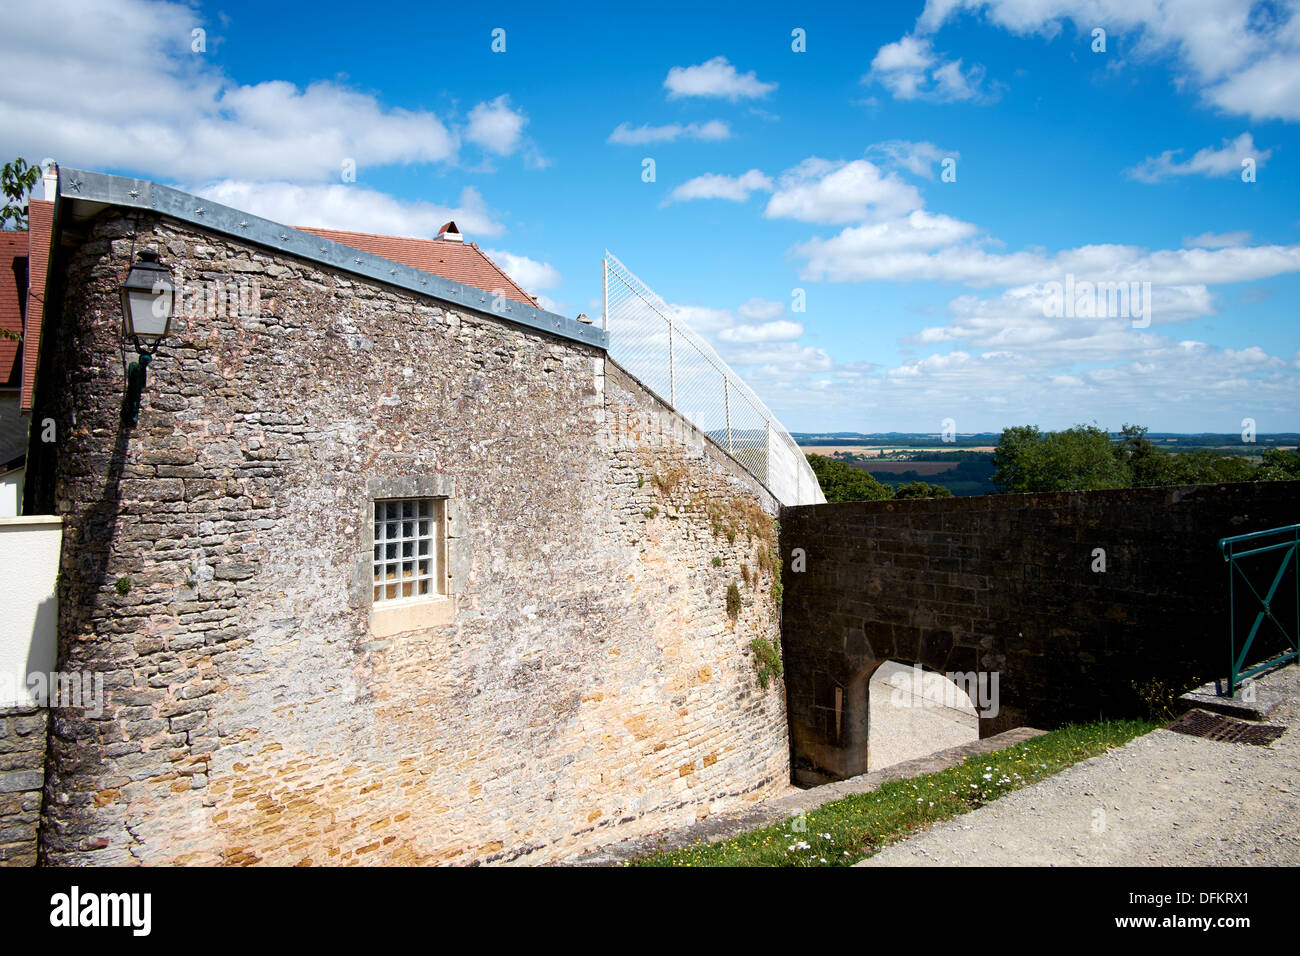 Town-wall of Langres, France - Stock Image